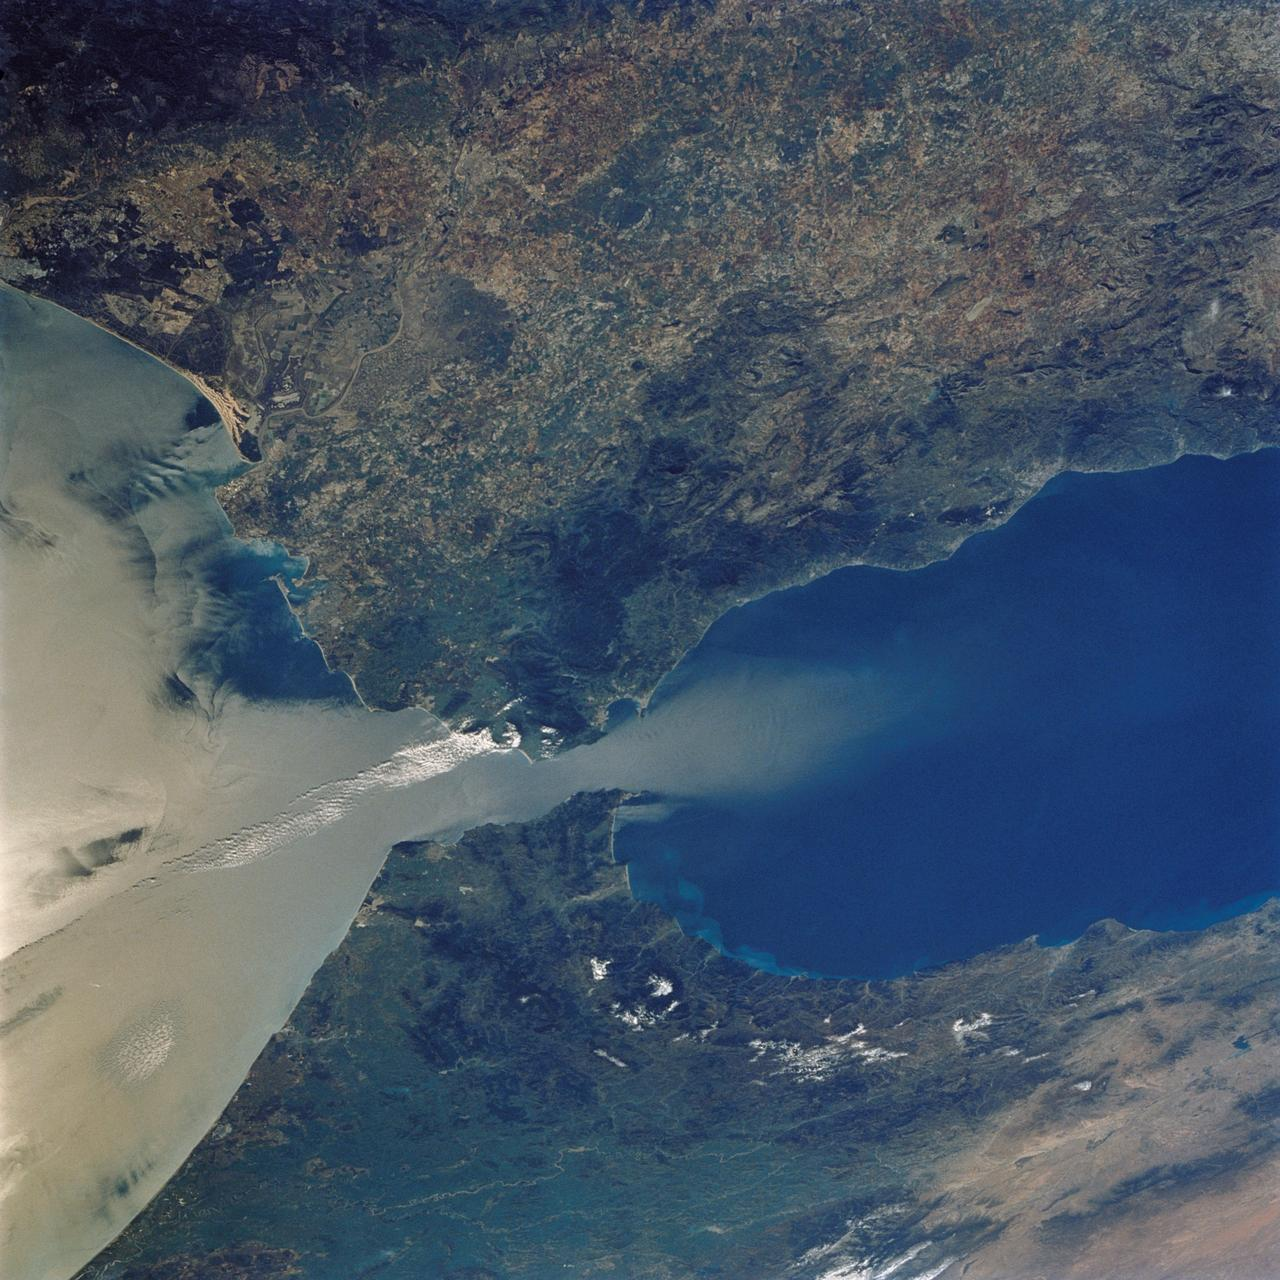 Straight of Gibraltar as seen from space. No trace of Atlantis island around the area.